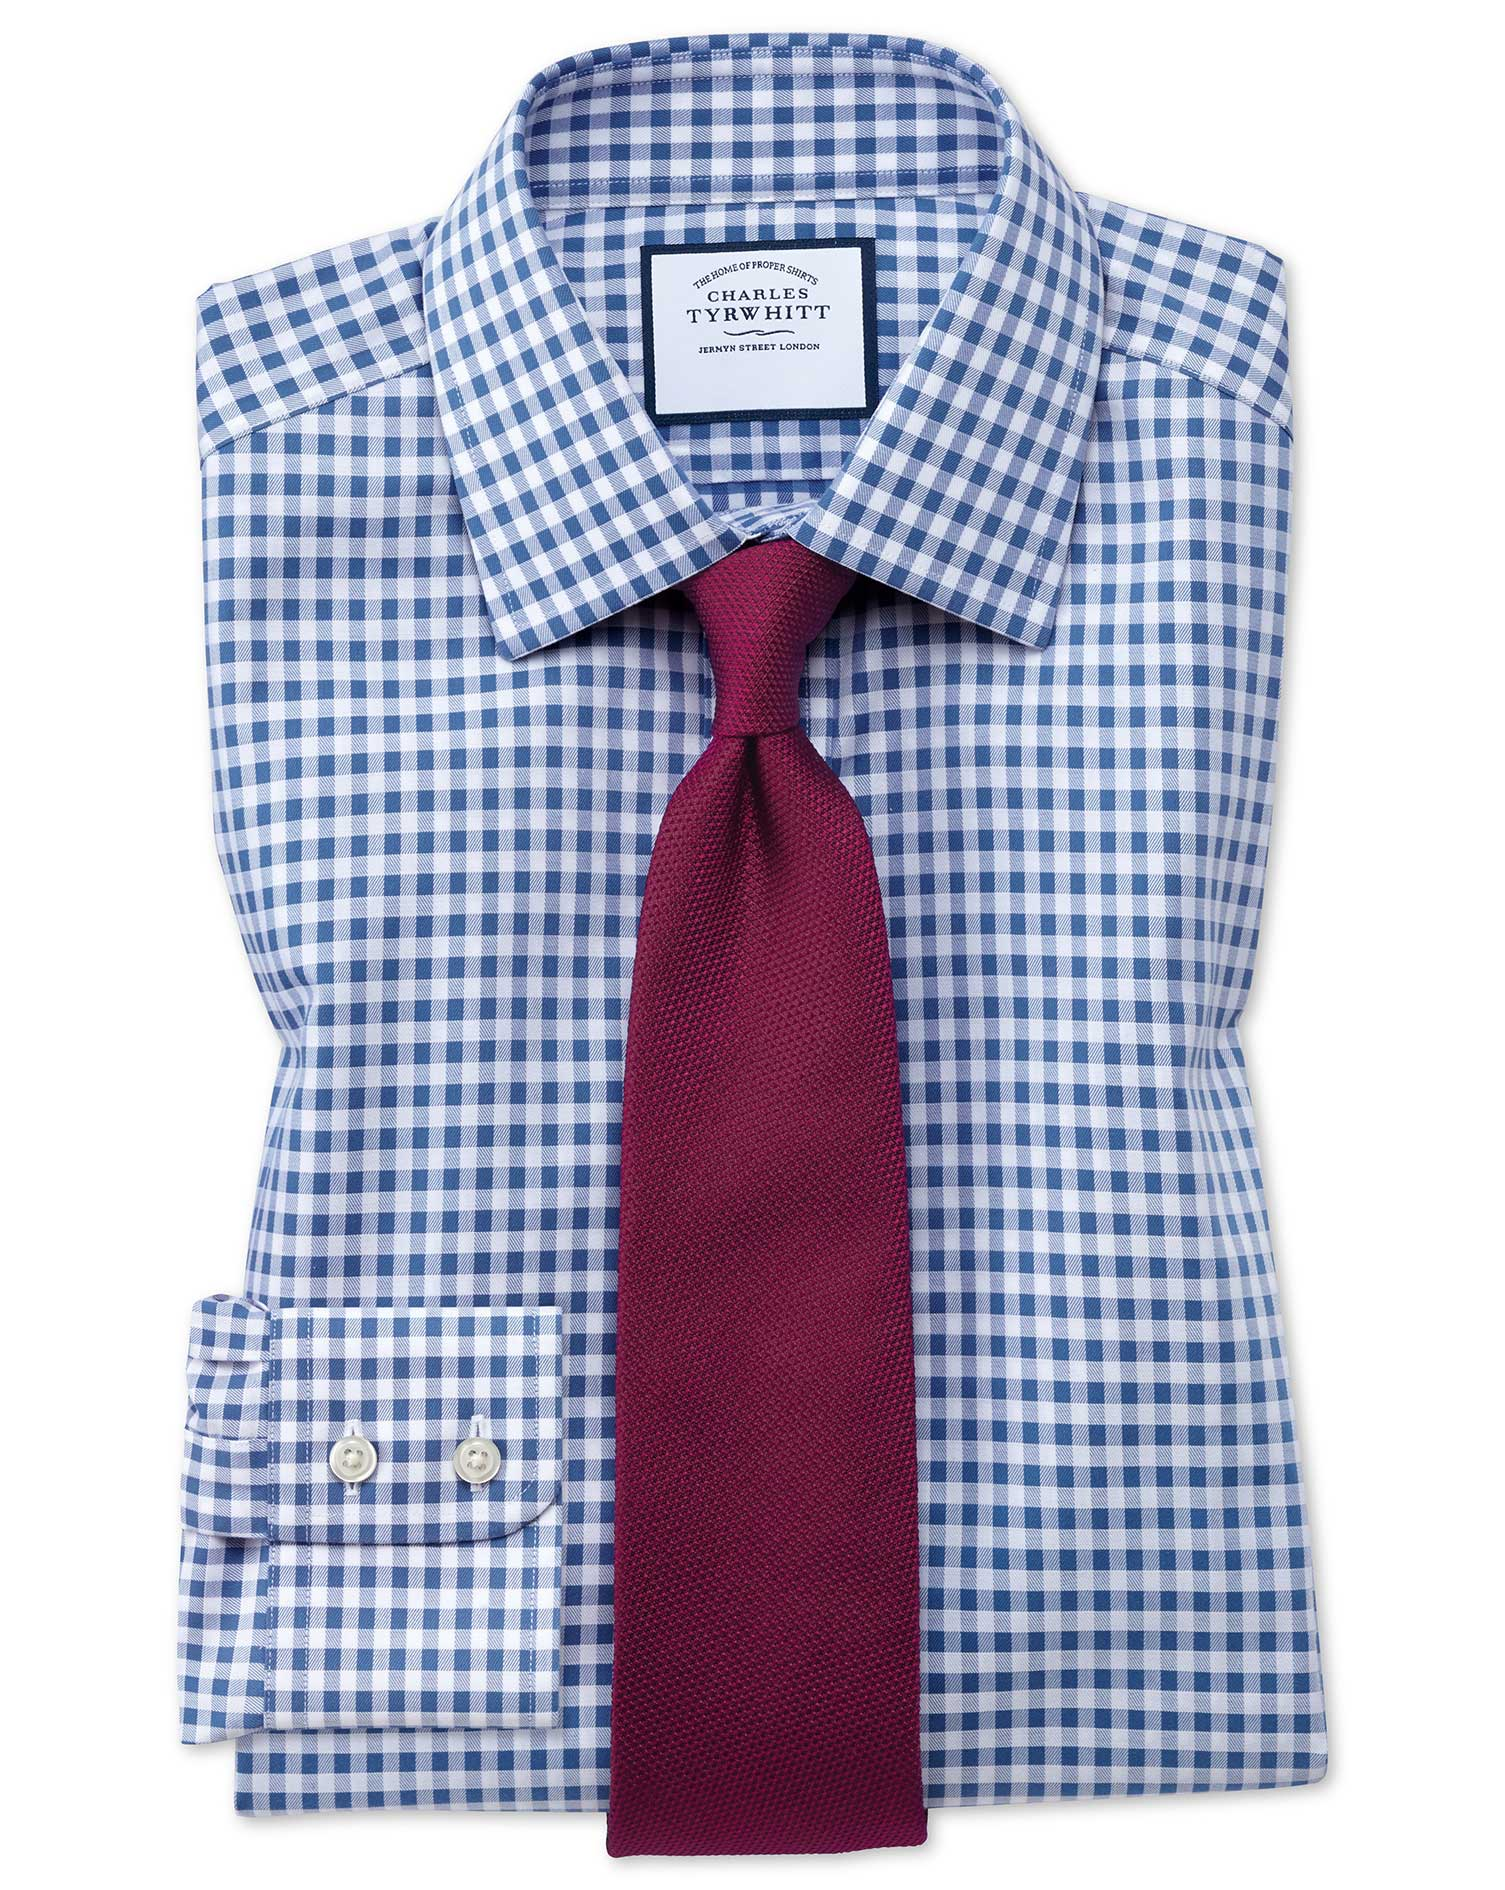 Slim Fit Non-Iron Gingham Mid Blue Cotton Formal Shirt Single Cuff Size 15.5/34 by Charles Tyrwhitt